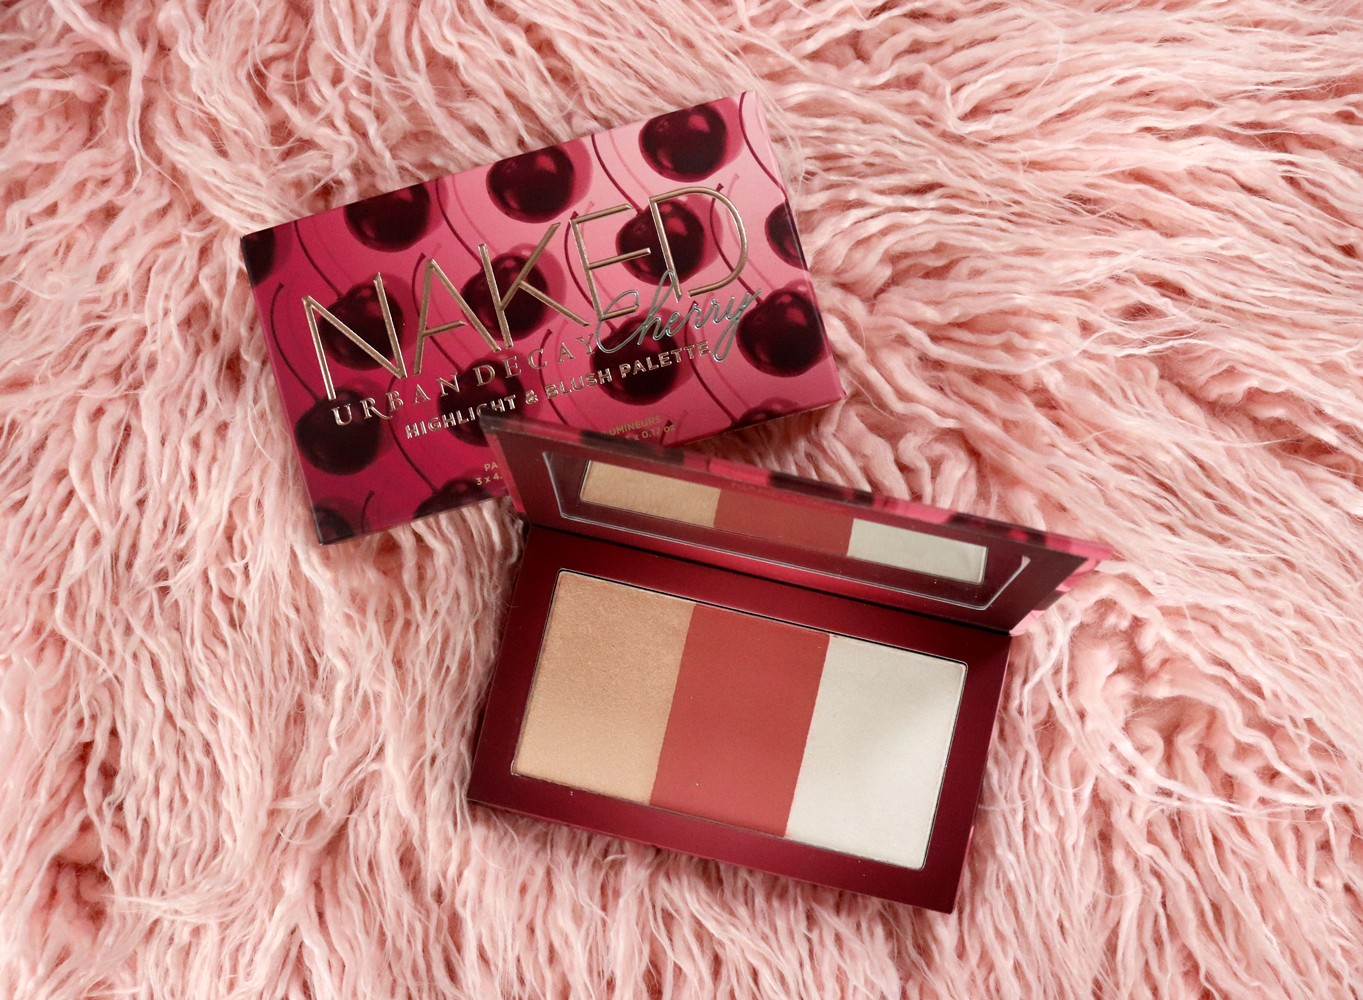 Urban Decay Naked Cherry Highlight Palette